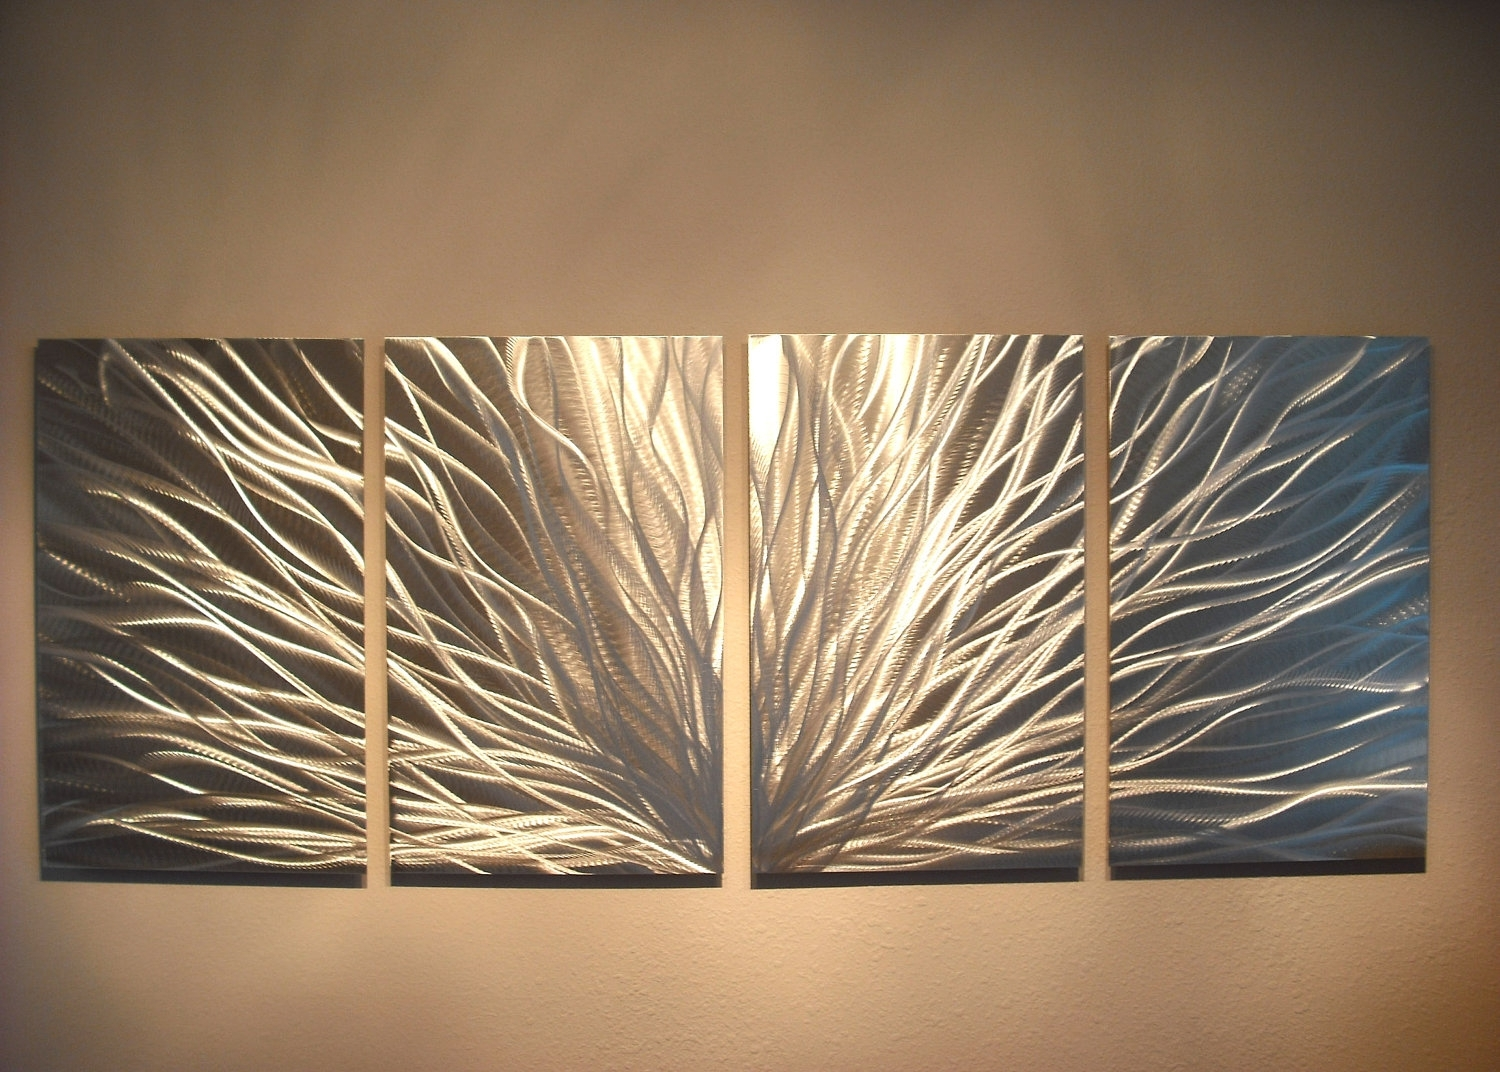 Radiance – Abstract Metal Wall Art Contemporary Modern Decor On Storenvy With Recent Modern Wall Art (View 6 of 15)